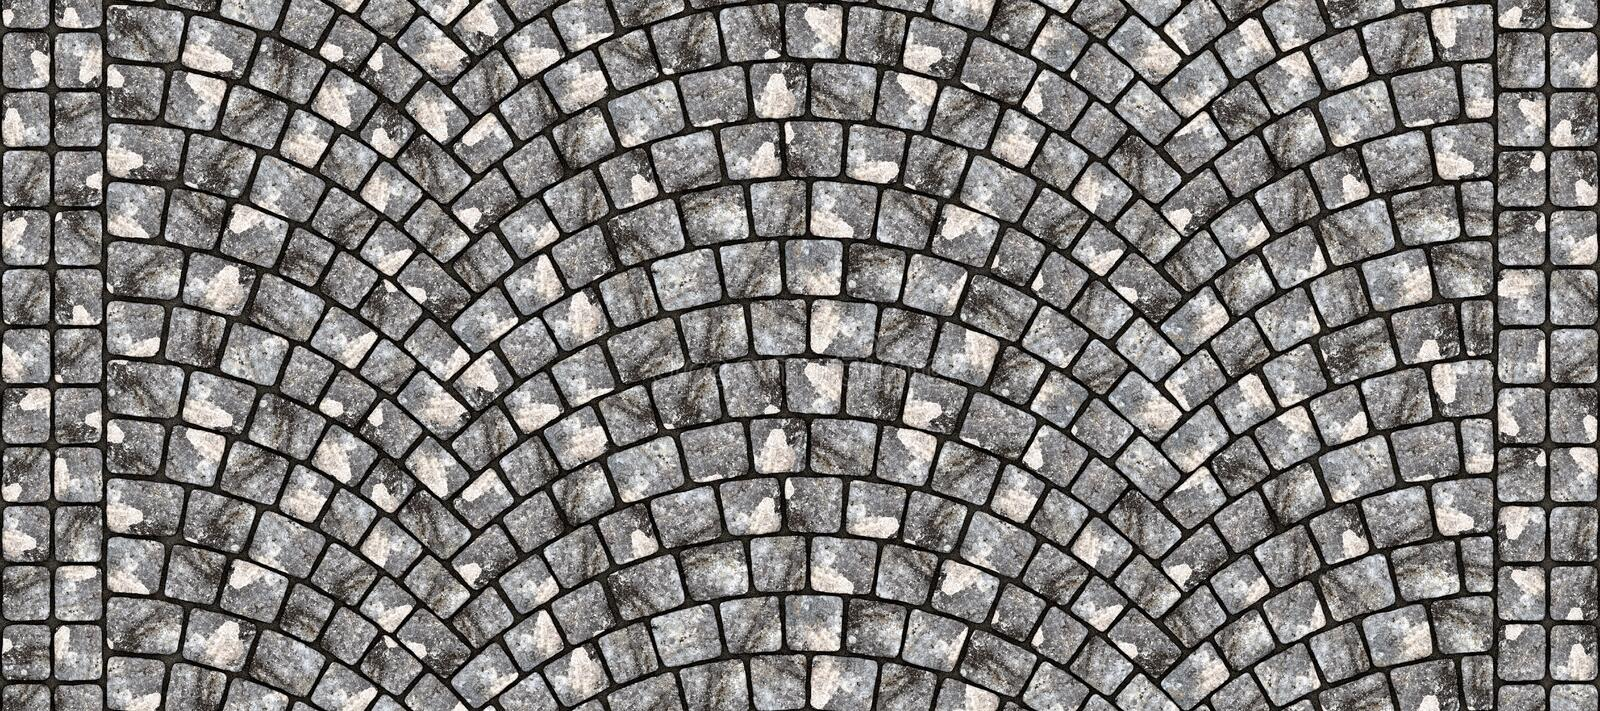 Road curved cobblestone texture 102. Cobblestone arched pavement road with edge courses at the sidewalk. Seamless tileable repeating 3D rendering texture royalty free illustration